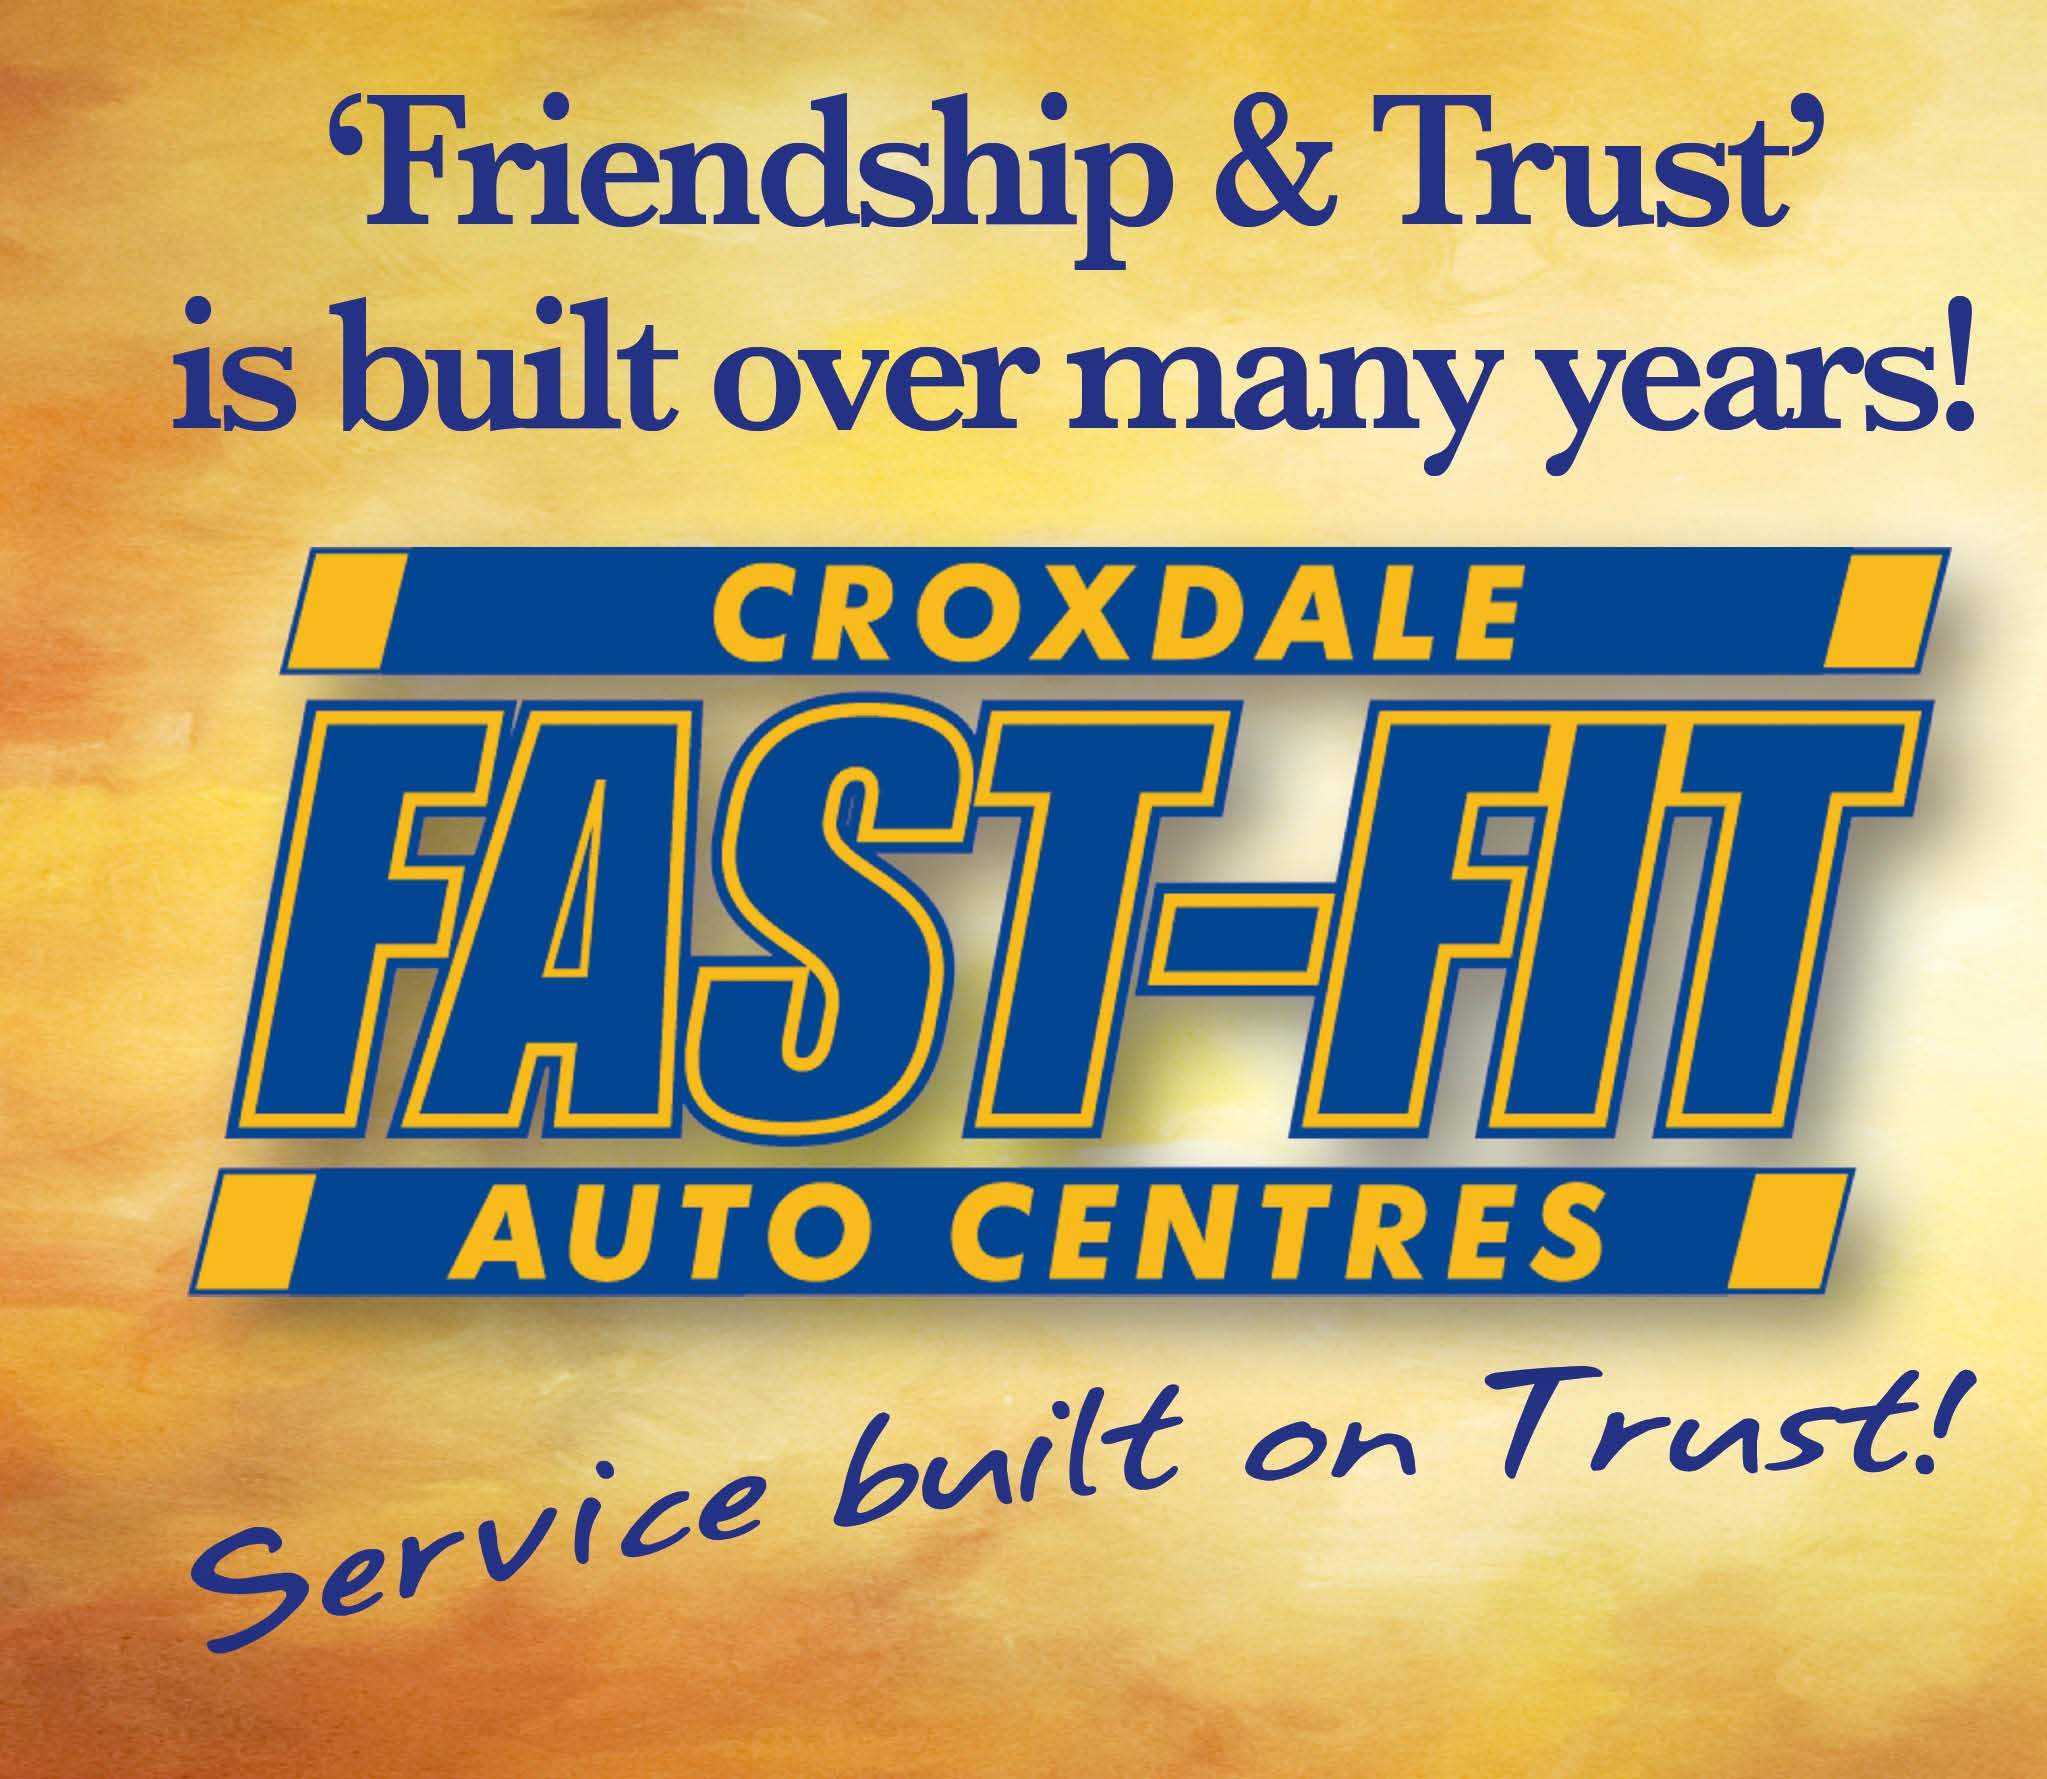 Croxdale Fast Fit and Auto Centres